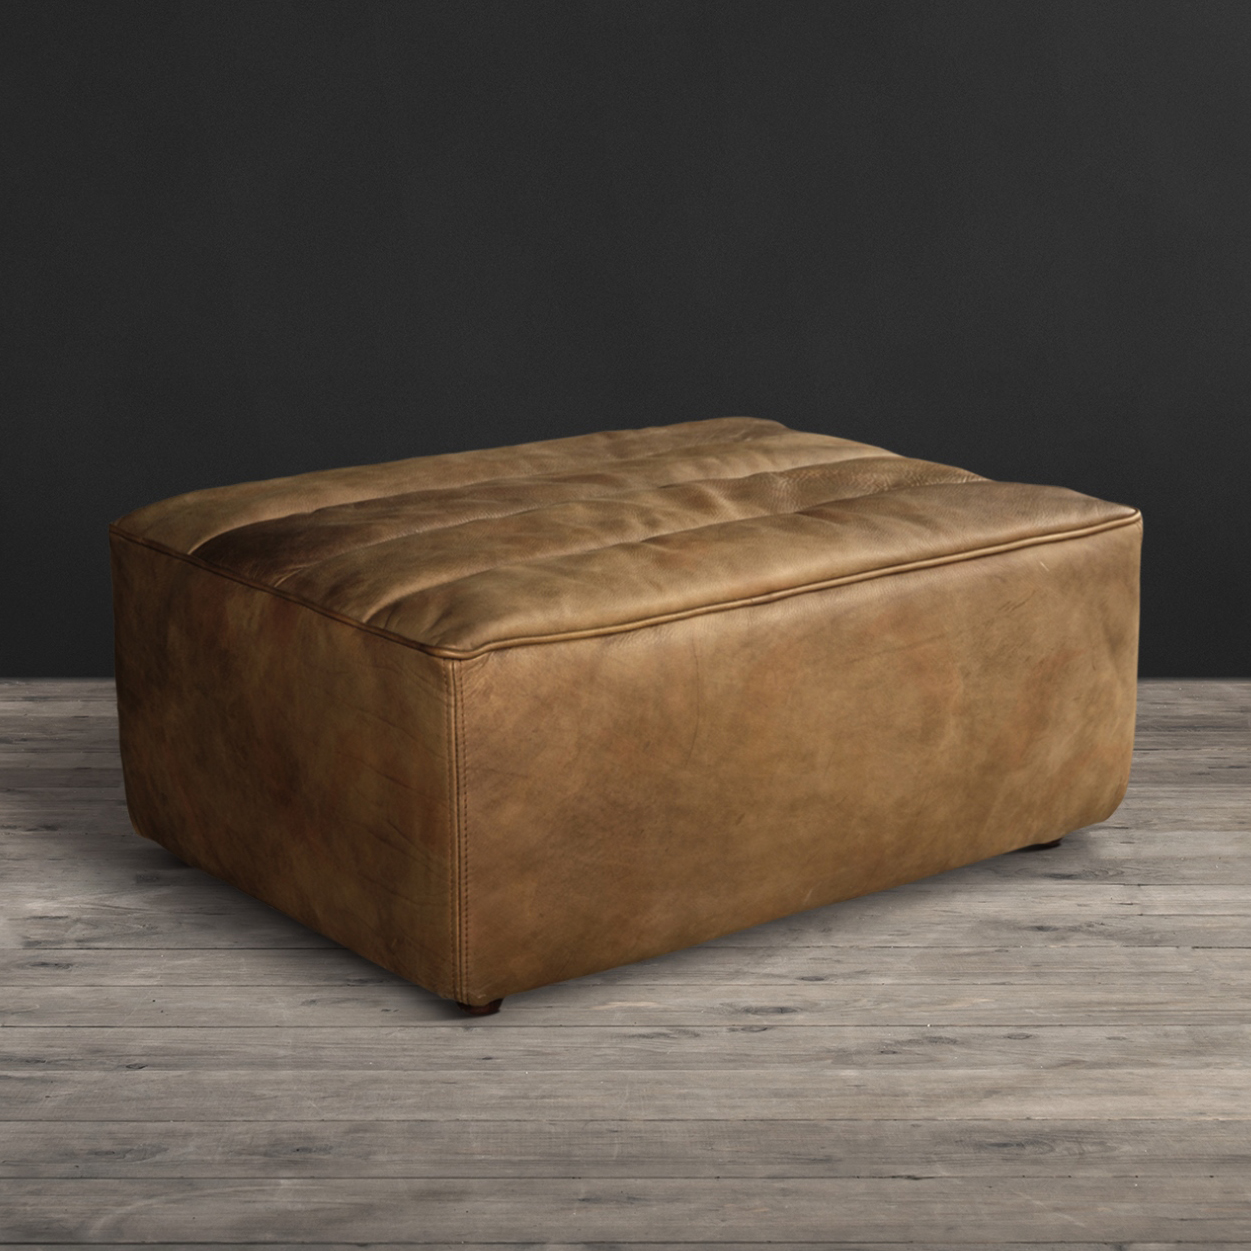 Lot 16 - Shabby Footstool Savage Leather High Impact Comfort Seating, Commonly Known As Our True '